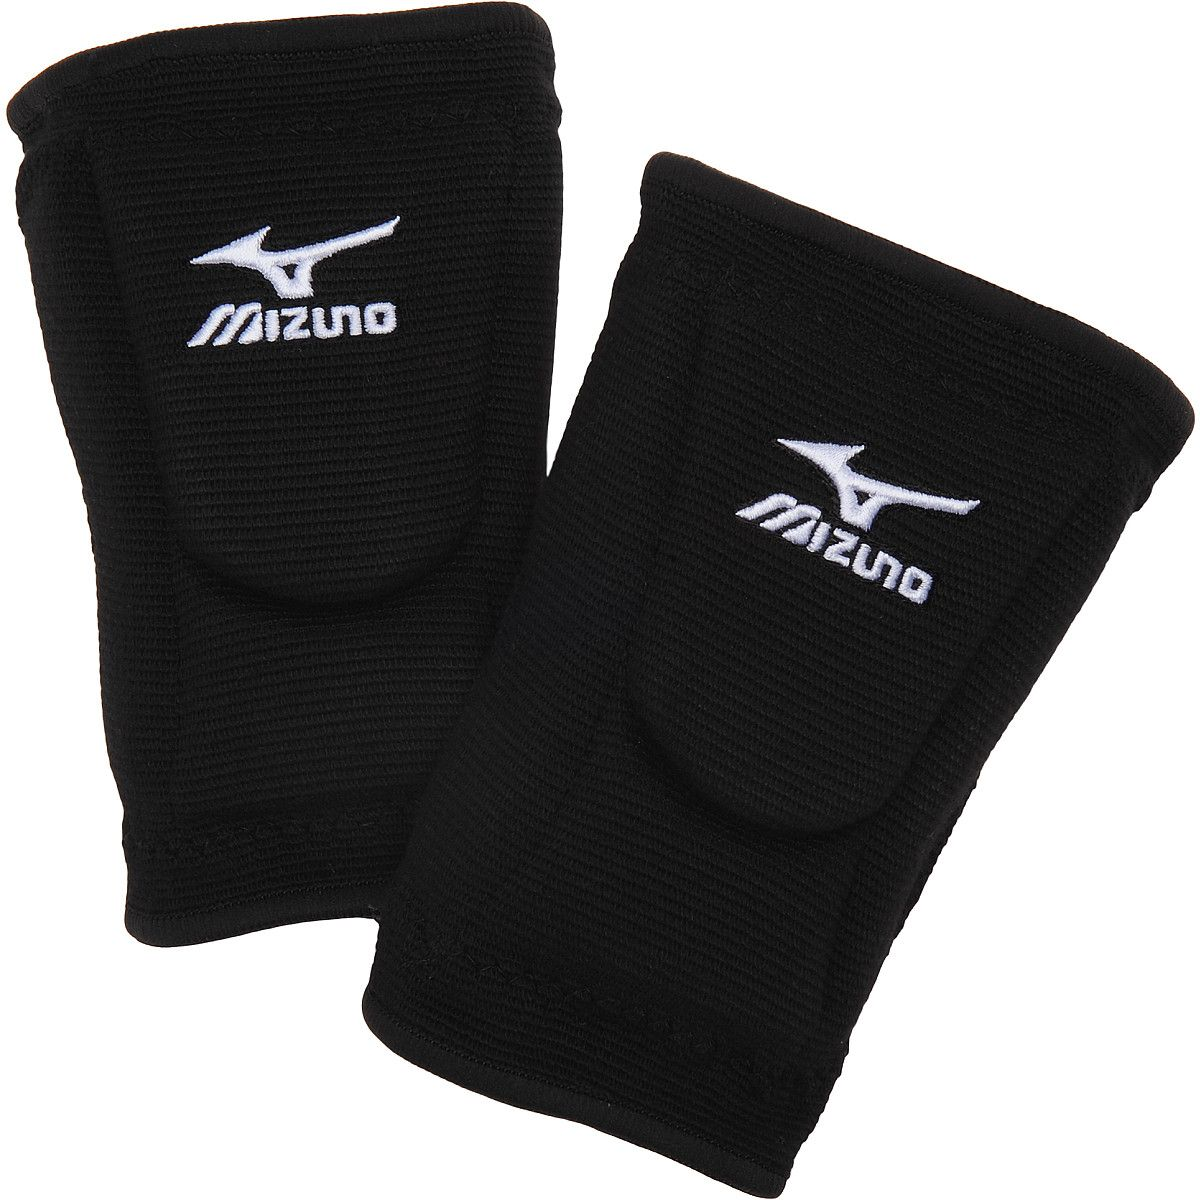 Mizuno Lr6 Volleyball Knee Pads Volleyball Outfits Volleyball Knee Pads Volleyball Equipment